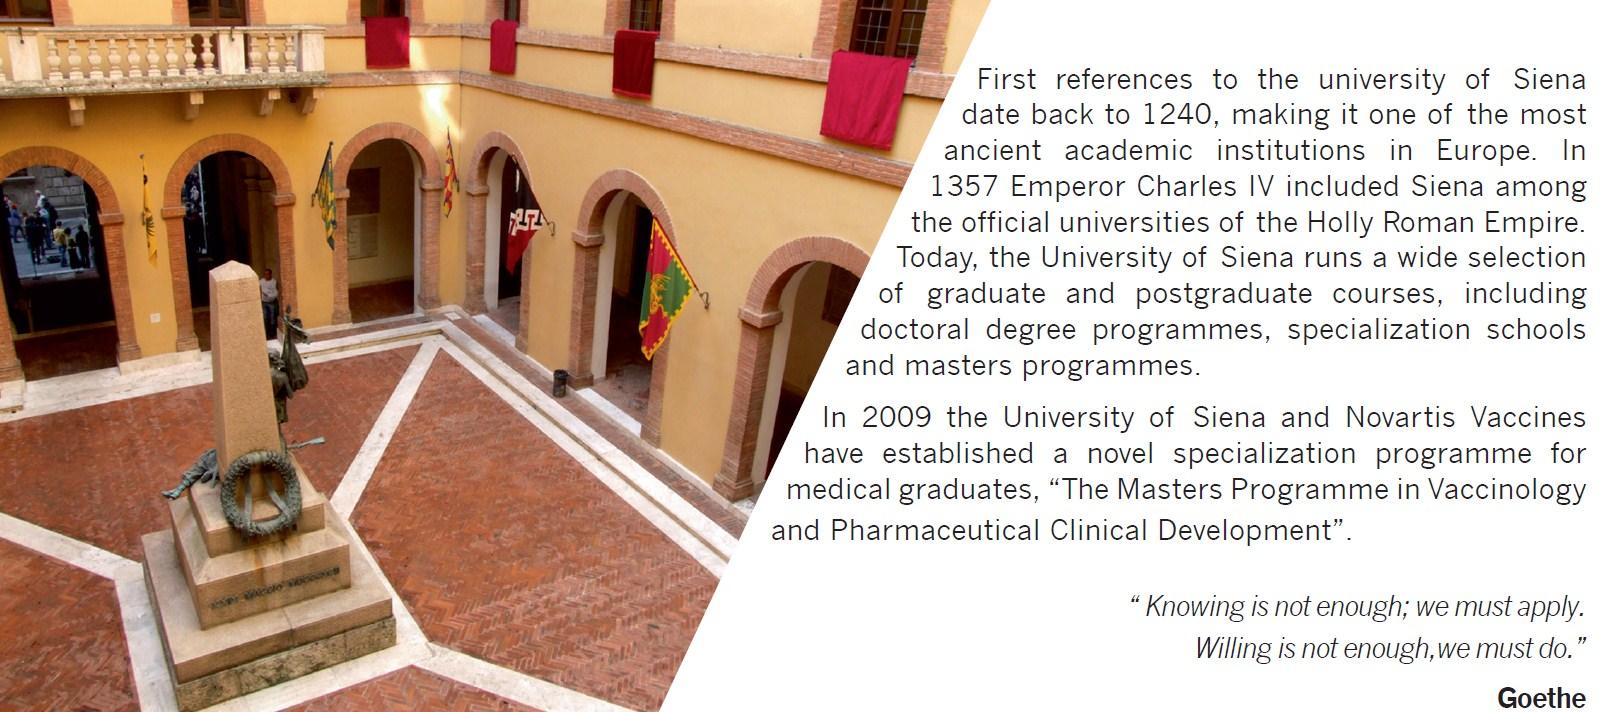 Goals & Concept First references to the University of Siena date back to 1240, making it one of the most ancient academic institutions in Europe.